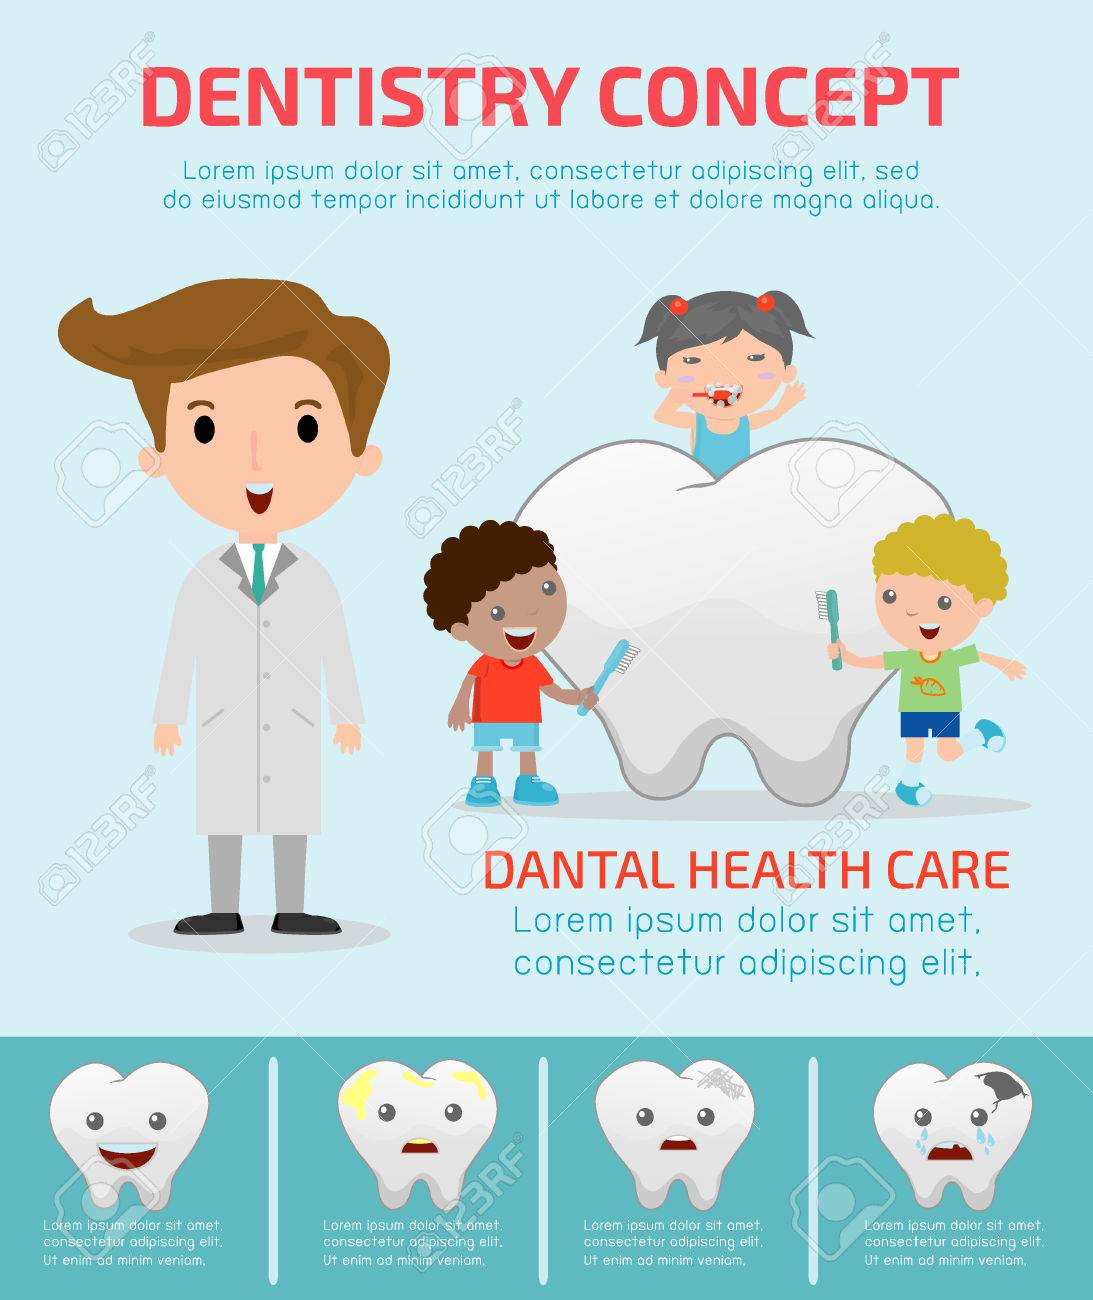 44175436-dentistry-concept-with-dental-h